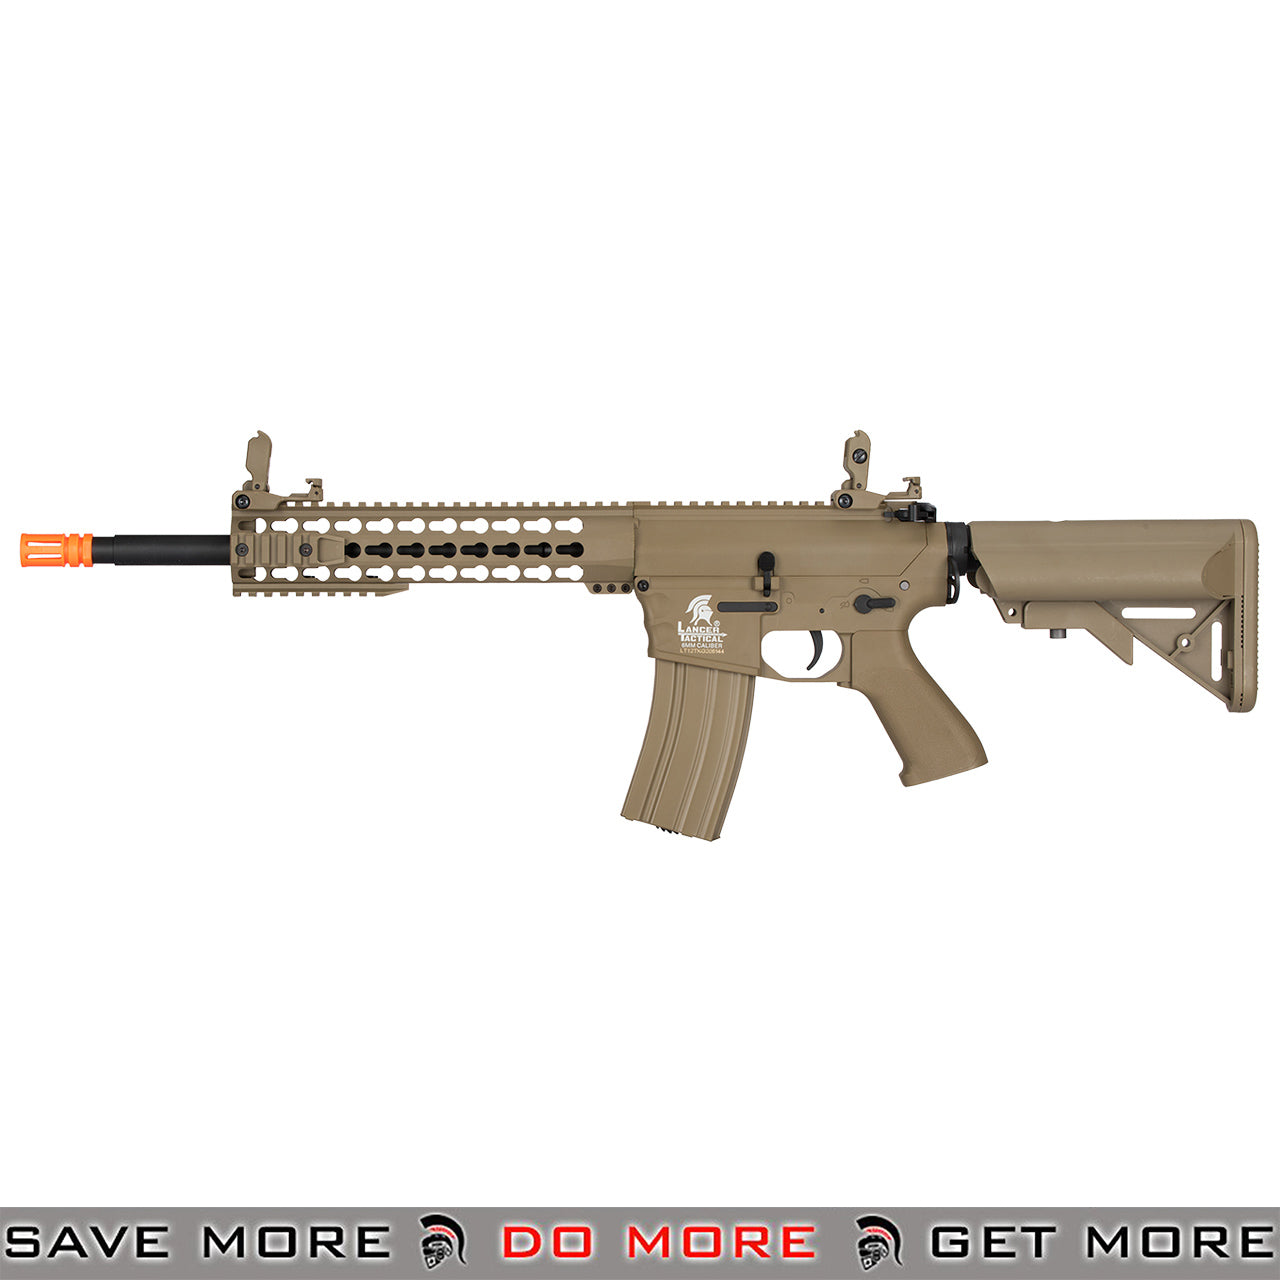 Lancer Tactical Gen. 2 Keymod Evo Polymer M4 Airsoft AEG Rifle LT-12TK-G2 - Tan